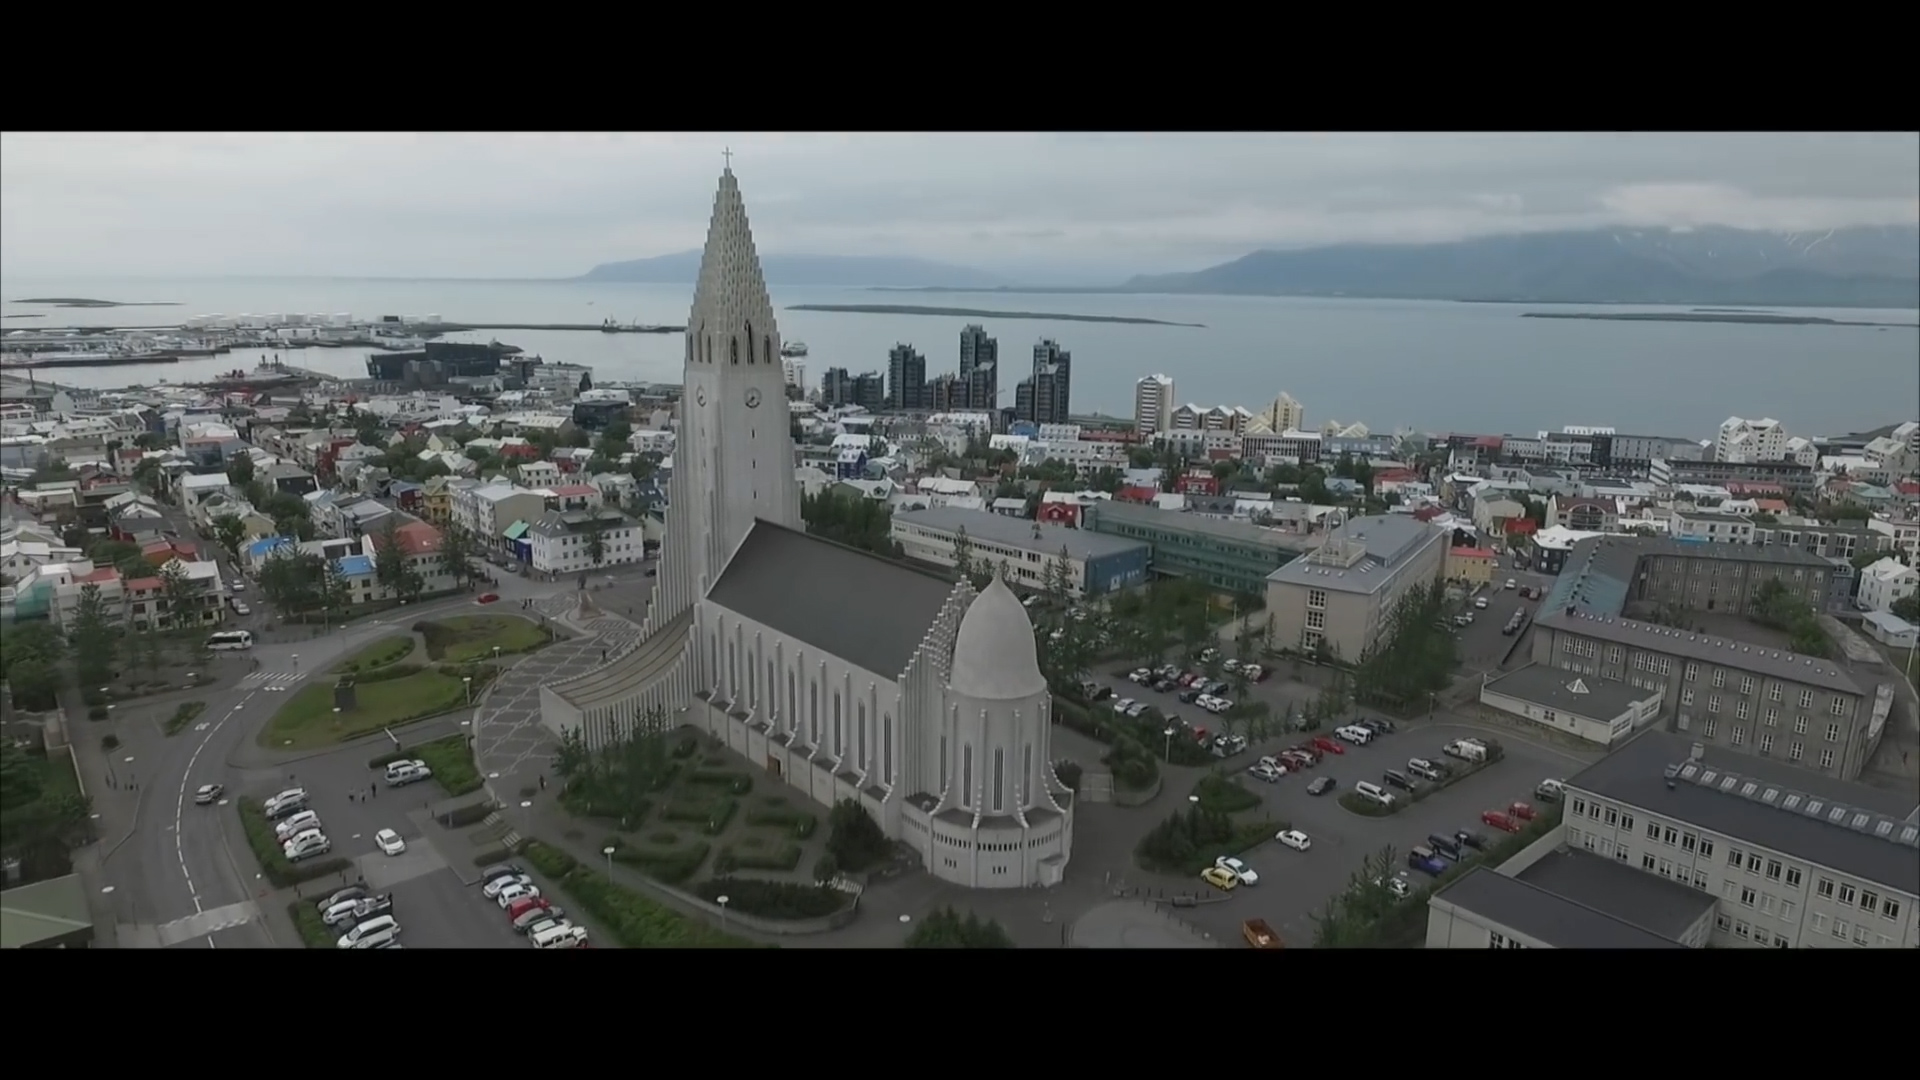 jim-west-central-church-iceland-aerial-6